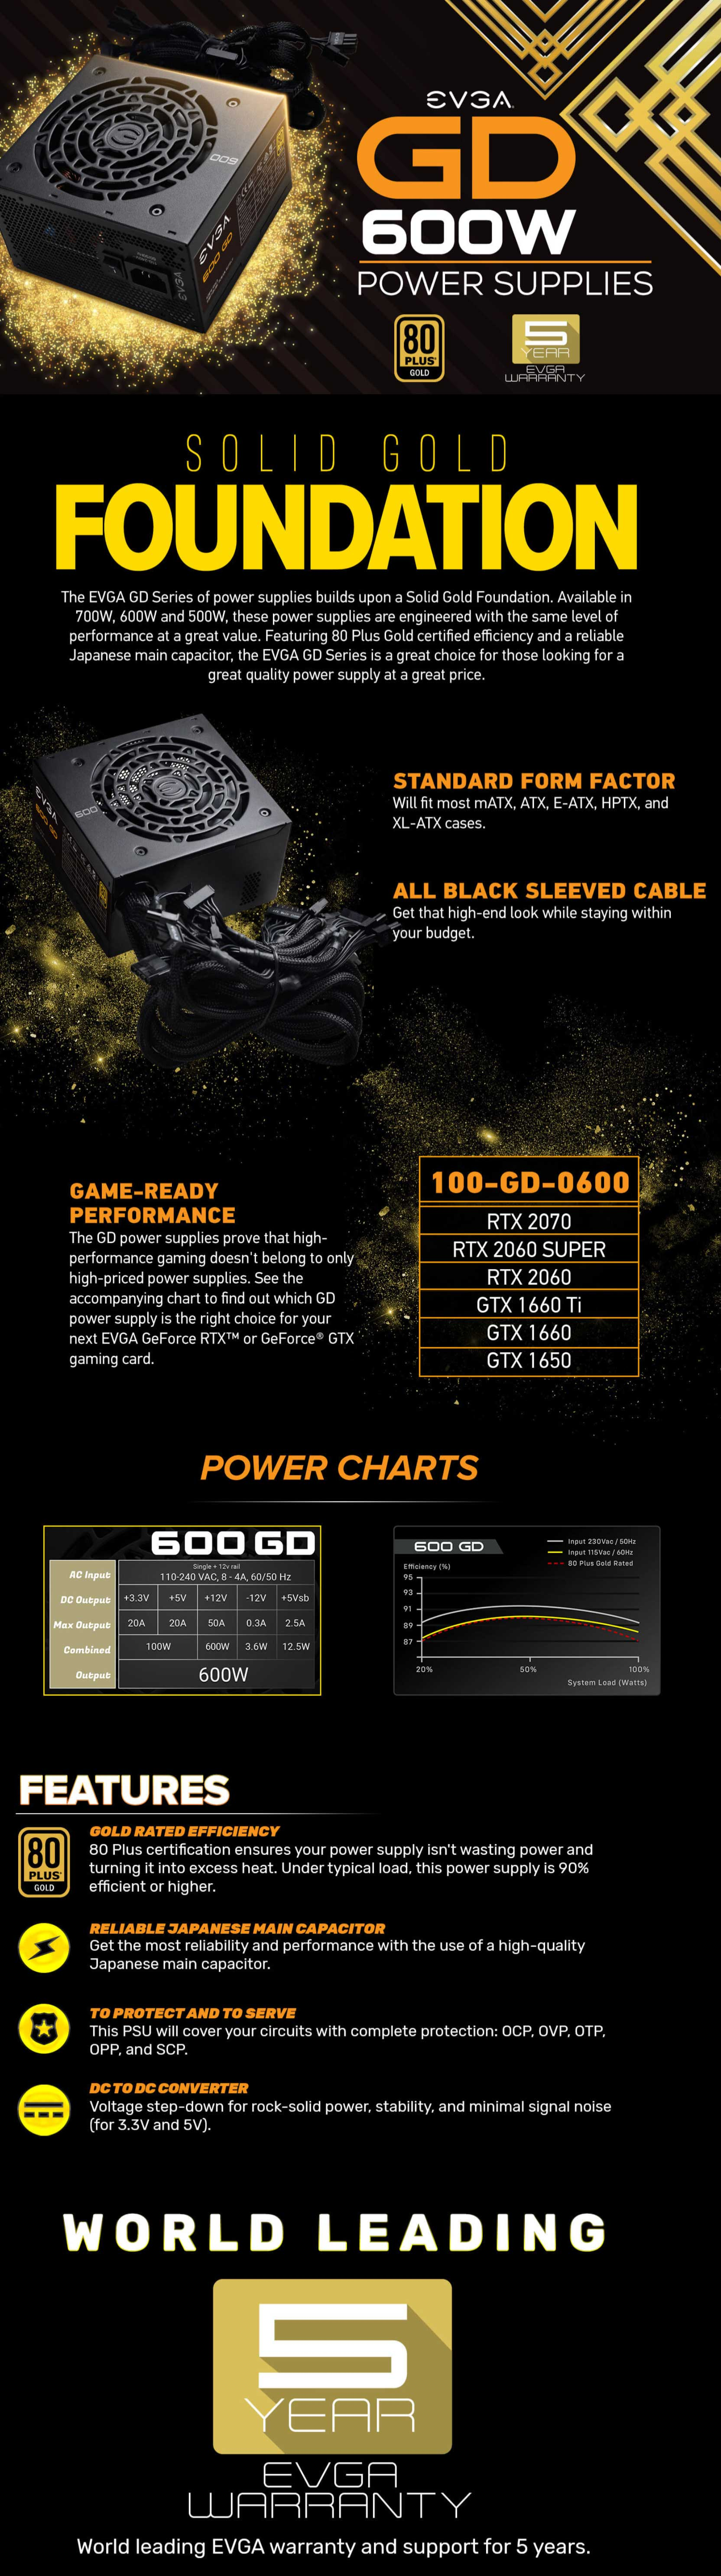 screencapture-evga-products-product-aspx-2020-01-22-14_30_56.jpg